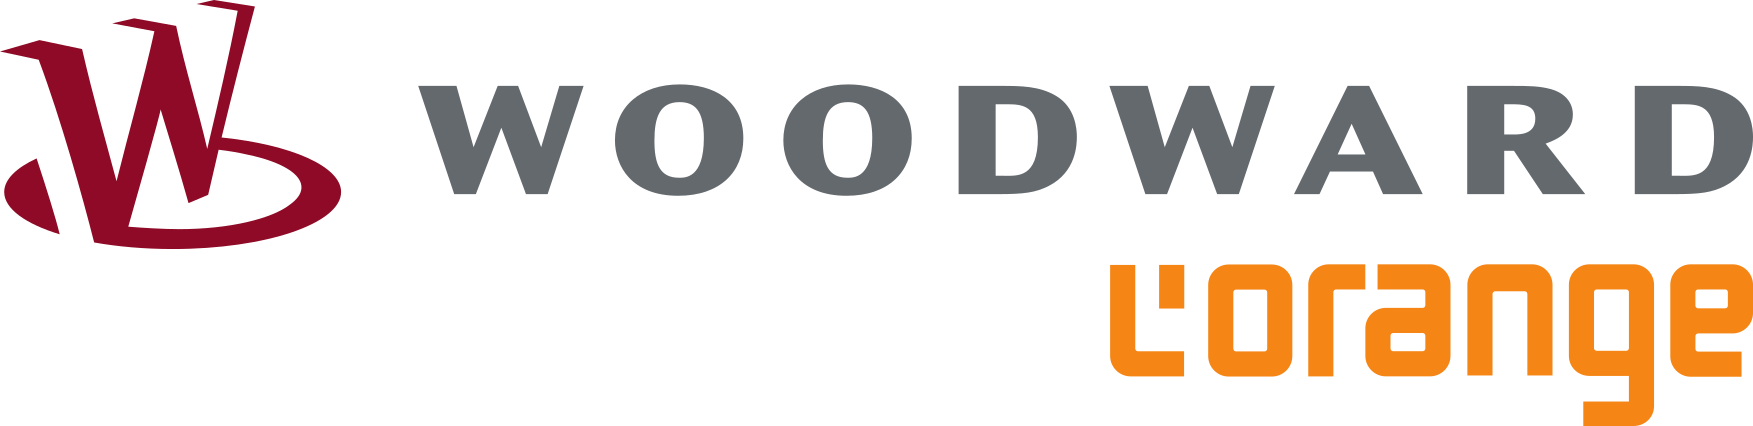 Woodward L'Orange logo